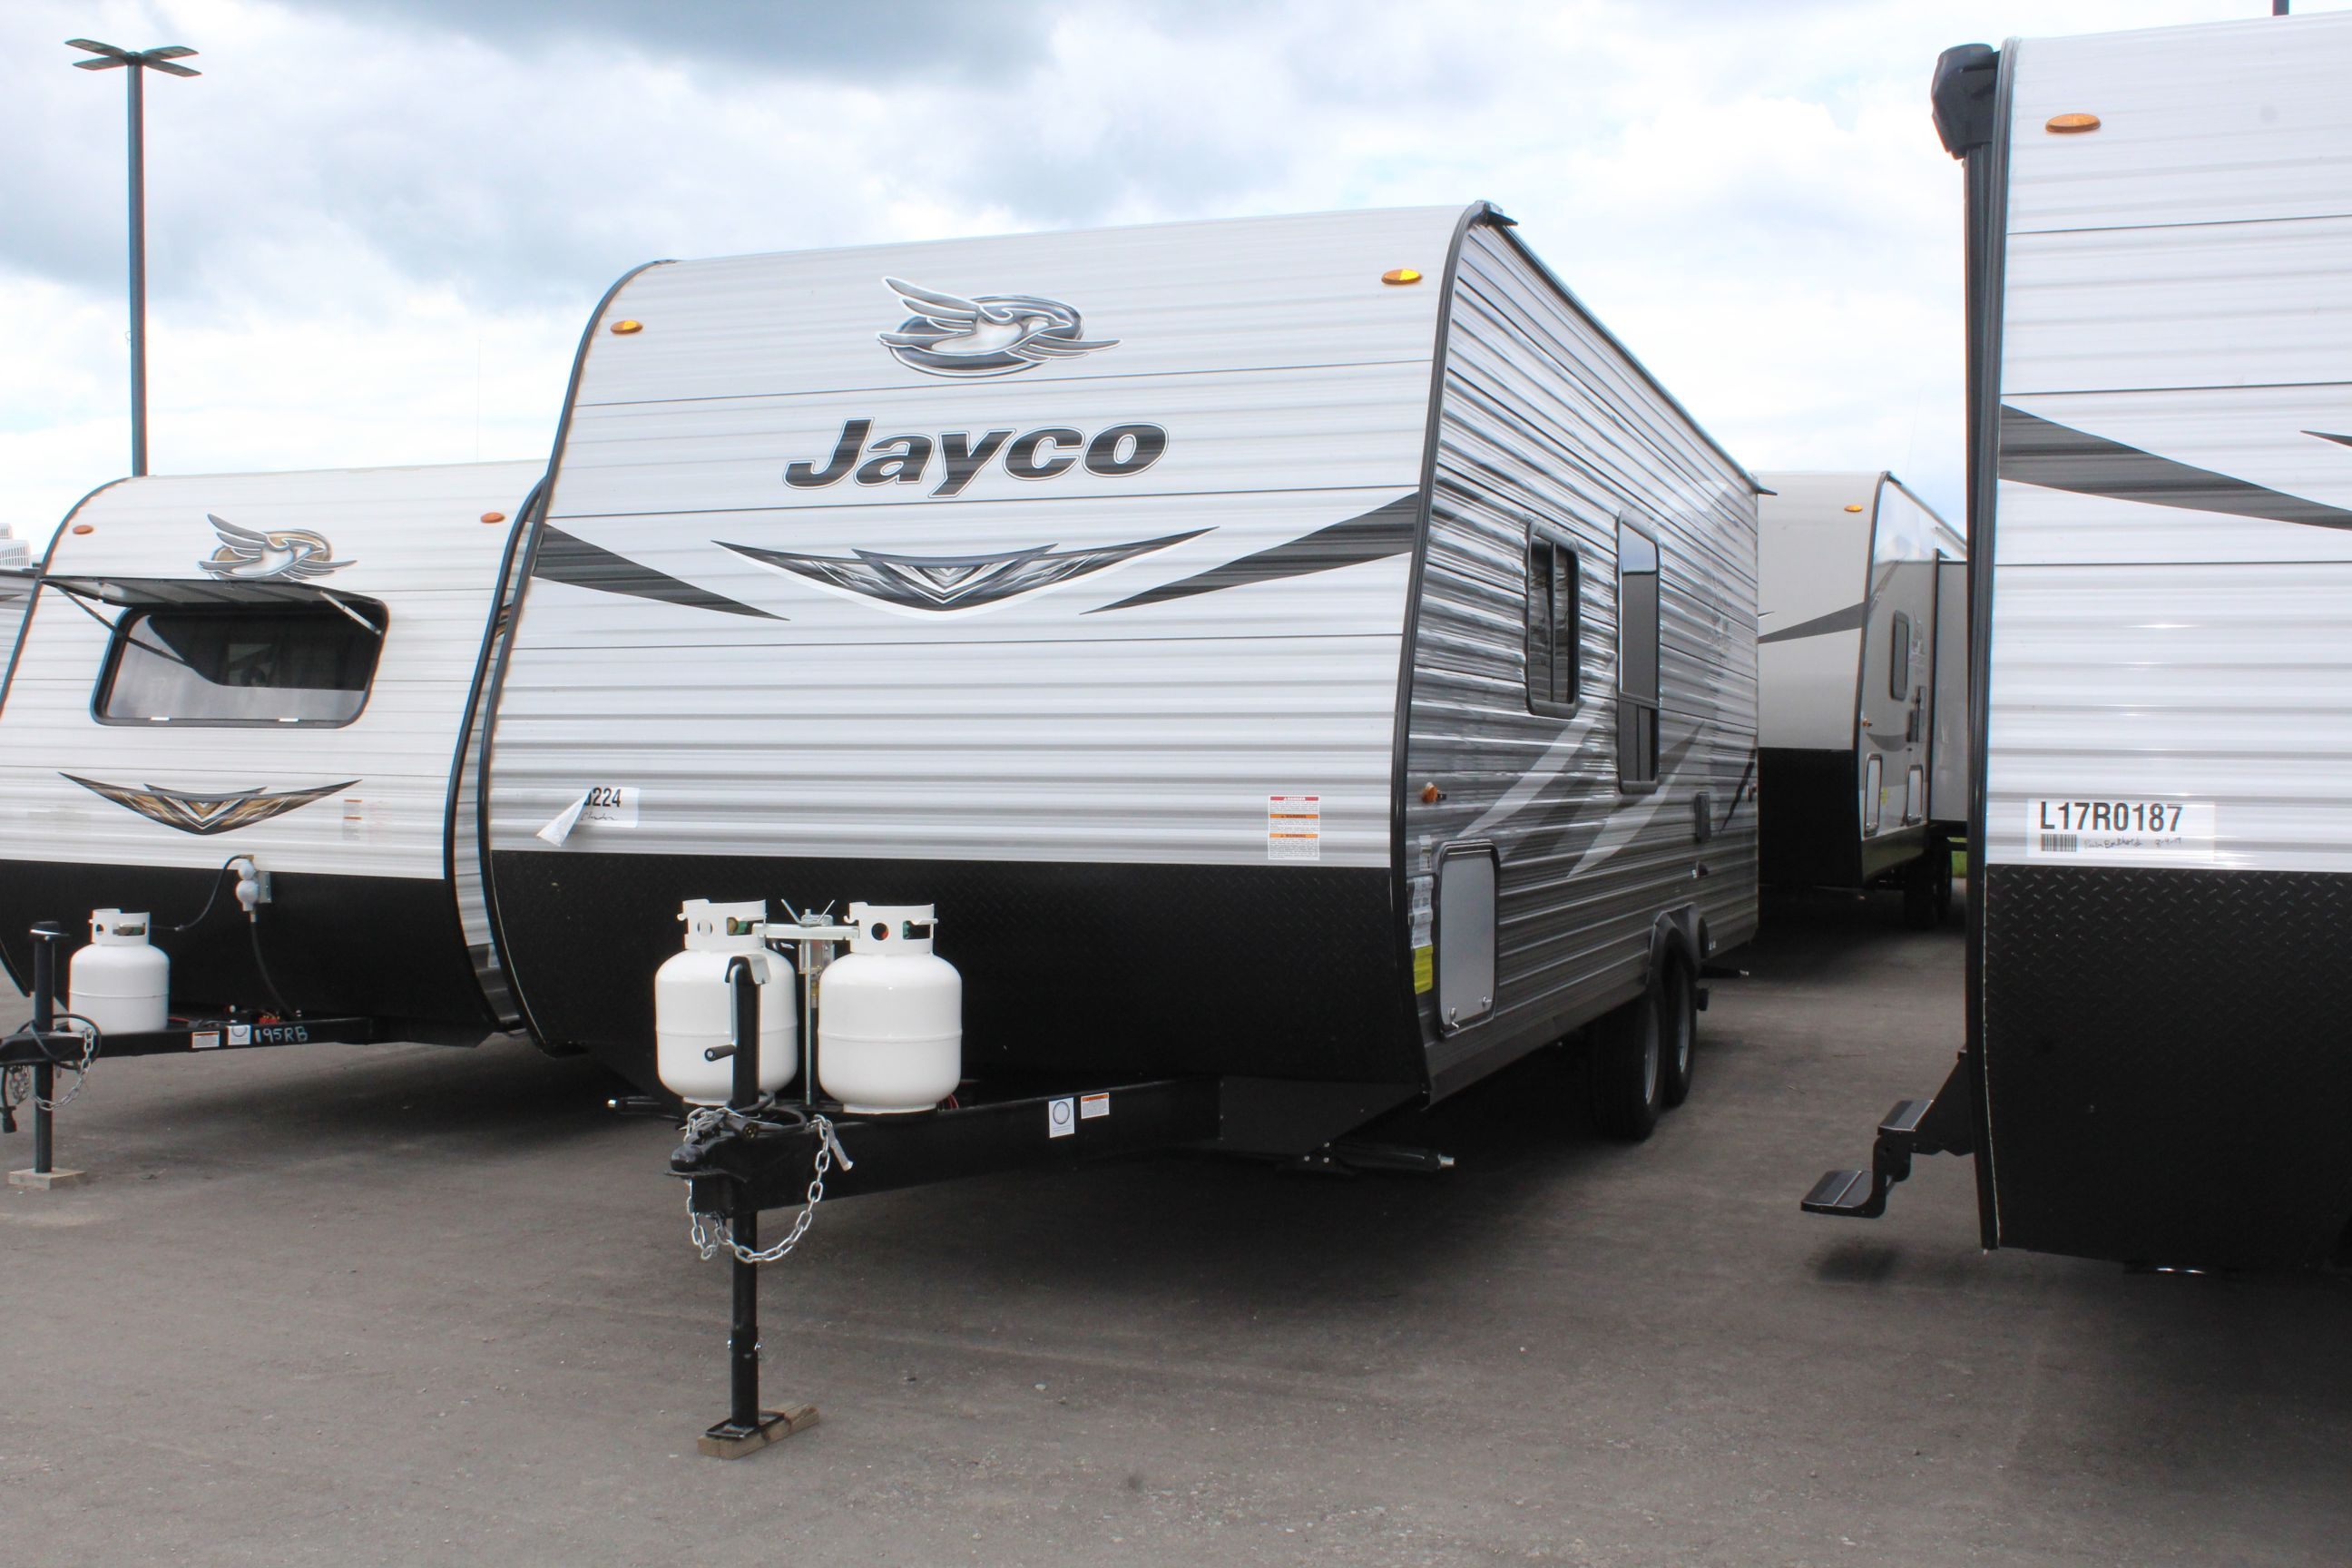 Front and Left exterior sides of the Jayco Jay Flight SLX 224BH, with its 13' Power awning with LED lights & speakers, and Keyed-Alike™ entry and baggage doors.